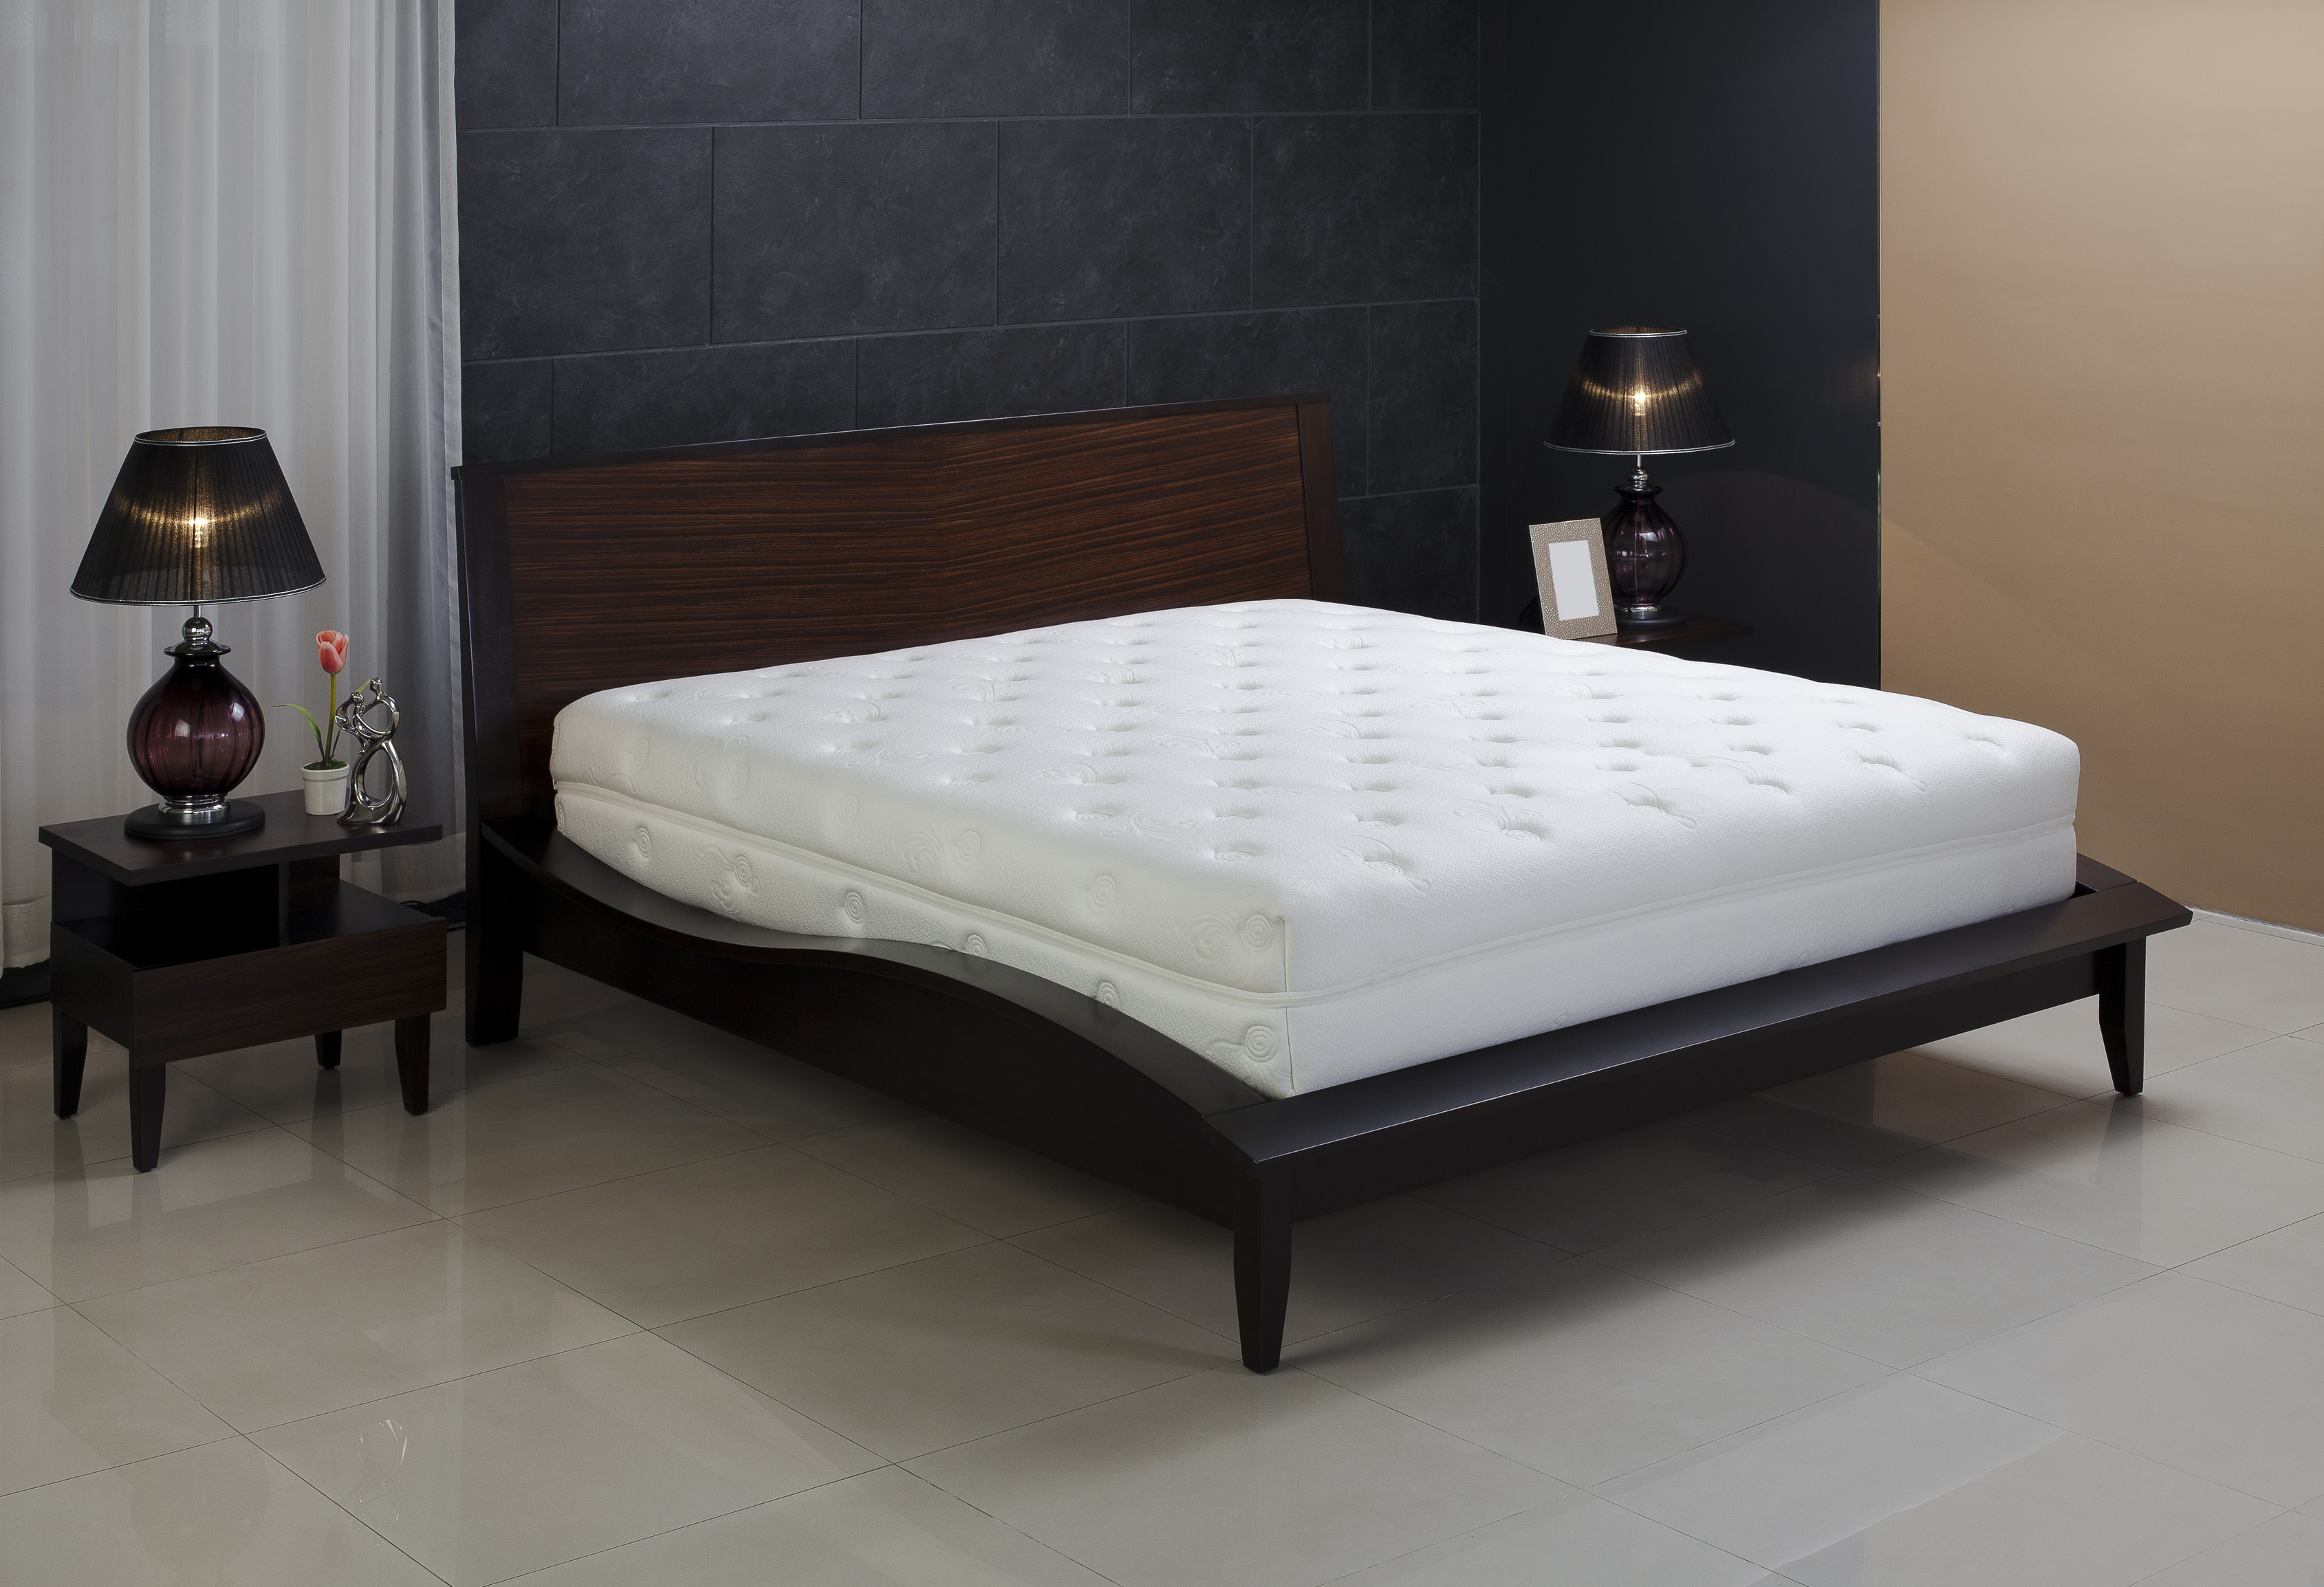 comment choisir son matelas matelas epeda with comment. Black Bedroom Furniture Sets. Home Design Ideas